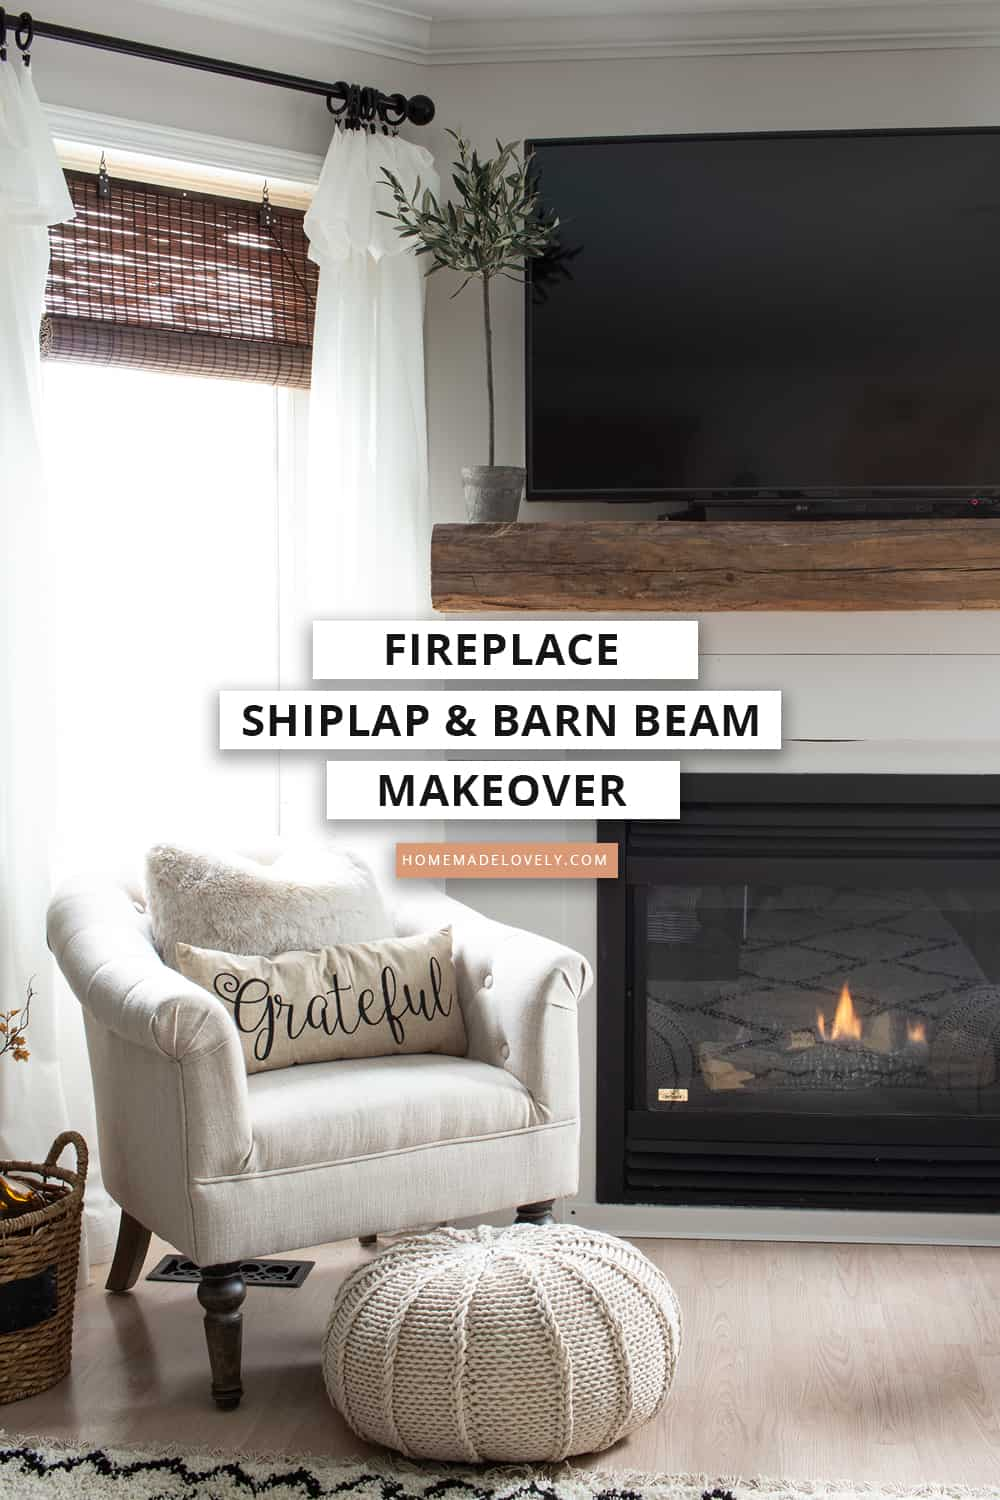 shiplap and barn beam fireplace makeover pin 1